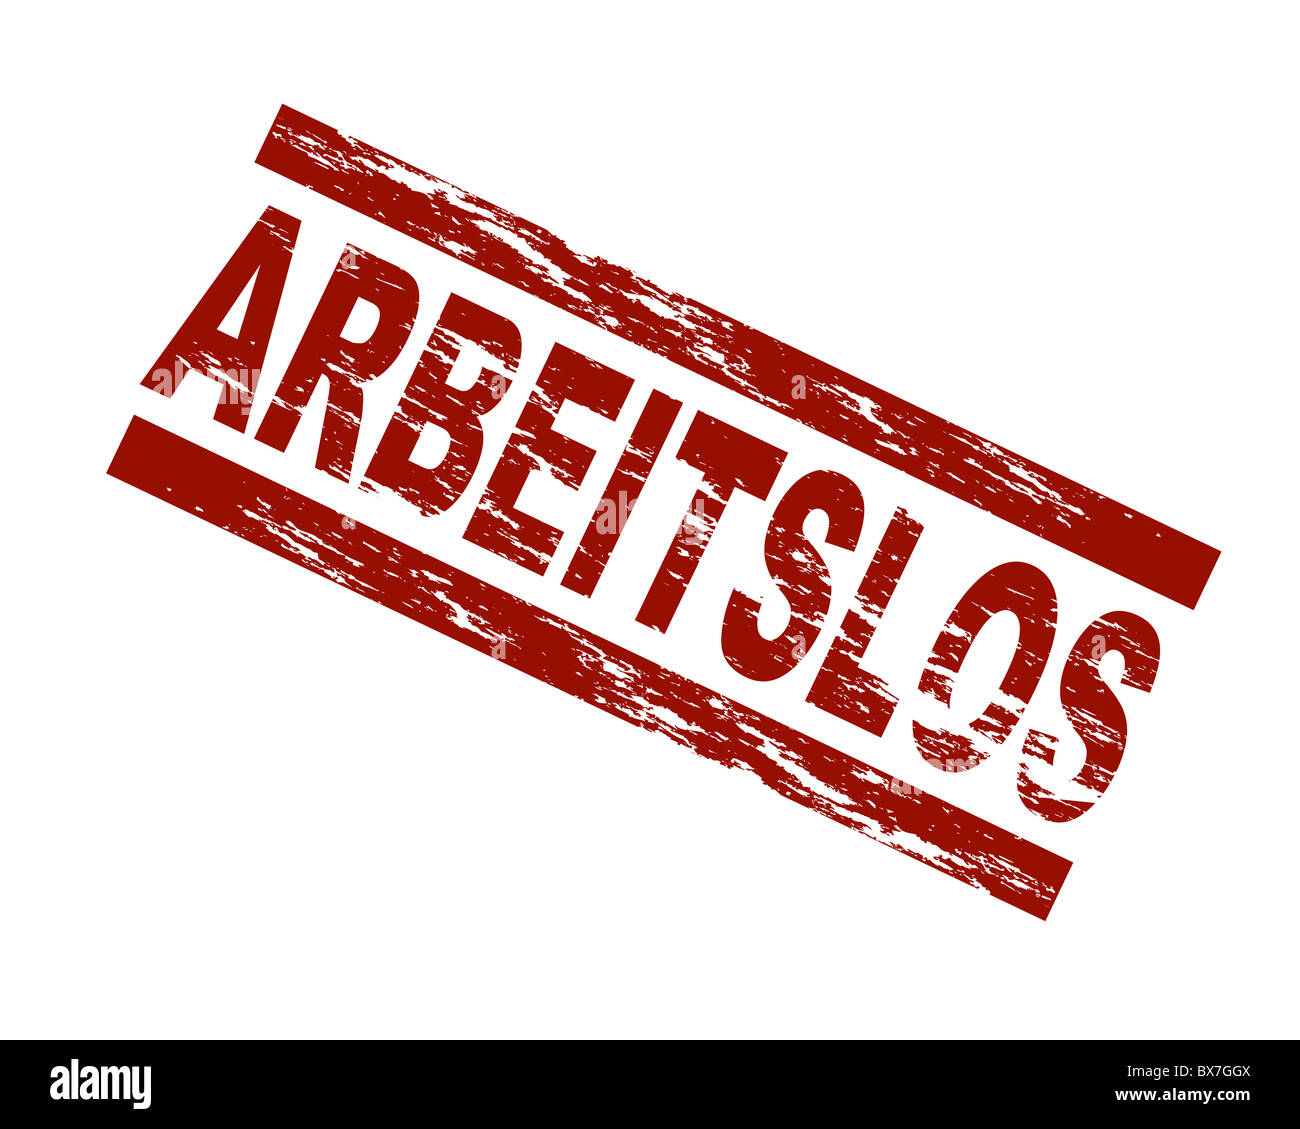 Stylized red stamp showing the german term arbeitslos. english: unemployed. All on white background. - Stock Image